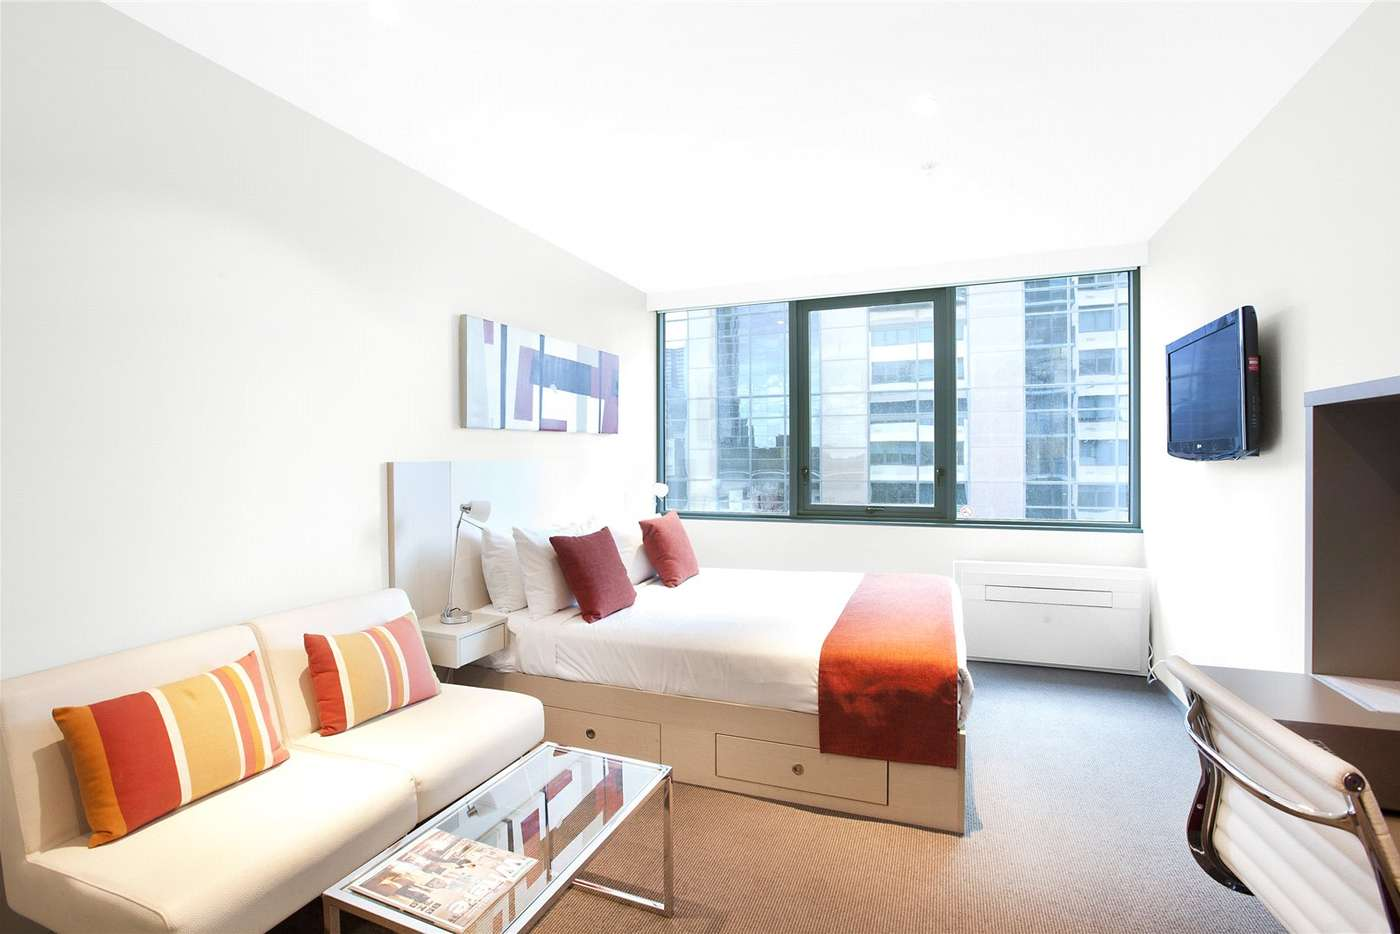 Main view of Homely studio listing, 602/181 ABeckett Street, Melbourne VIC 3000